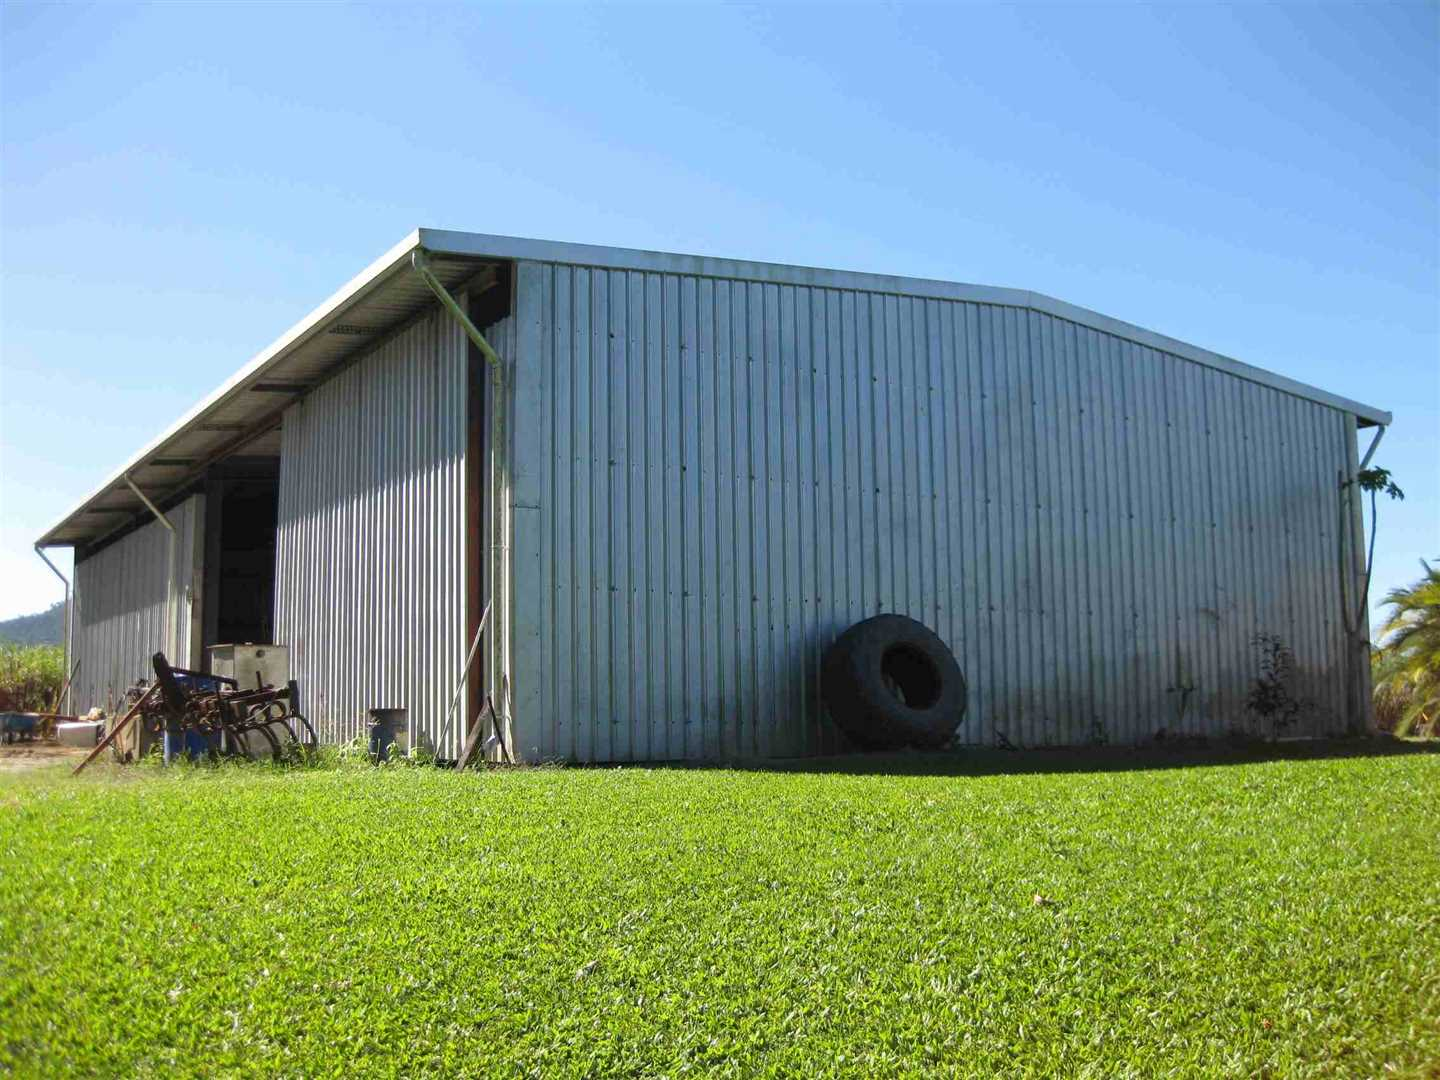 View of part of large farm shed, photo 3